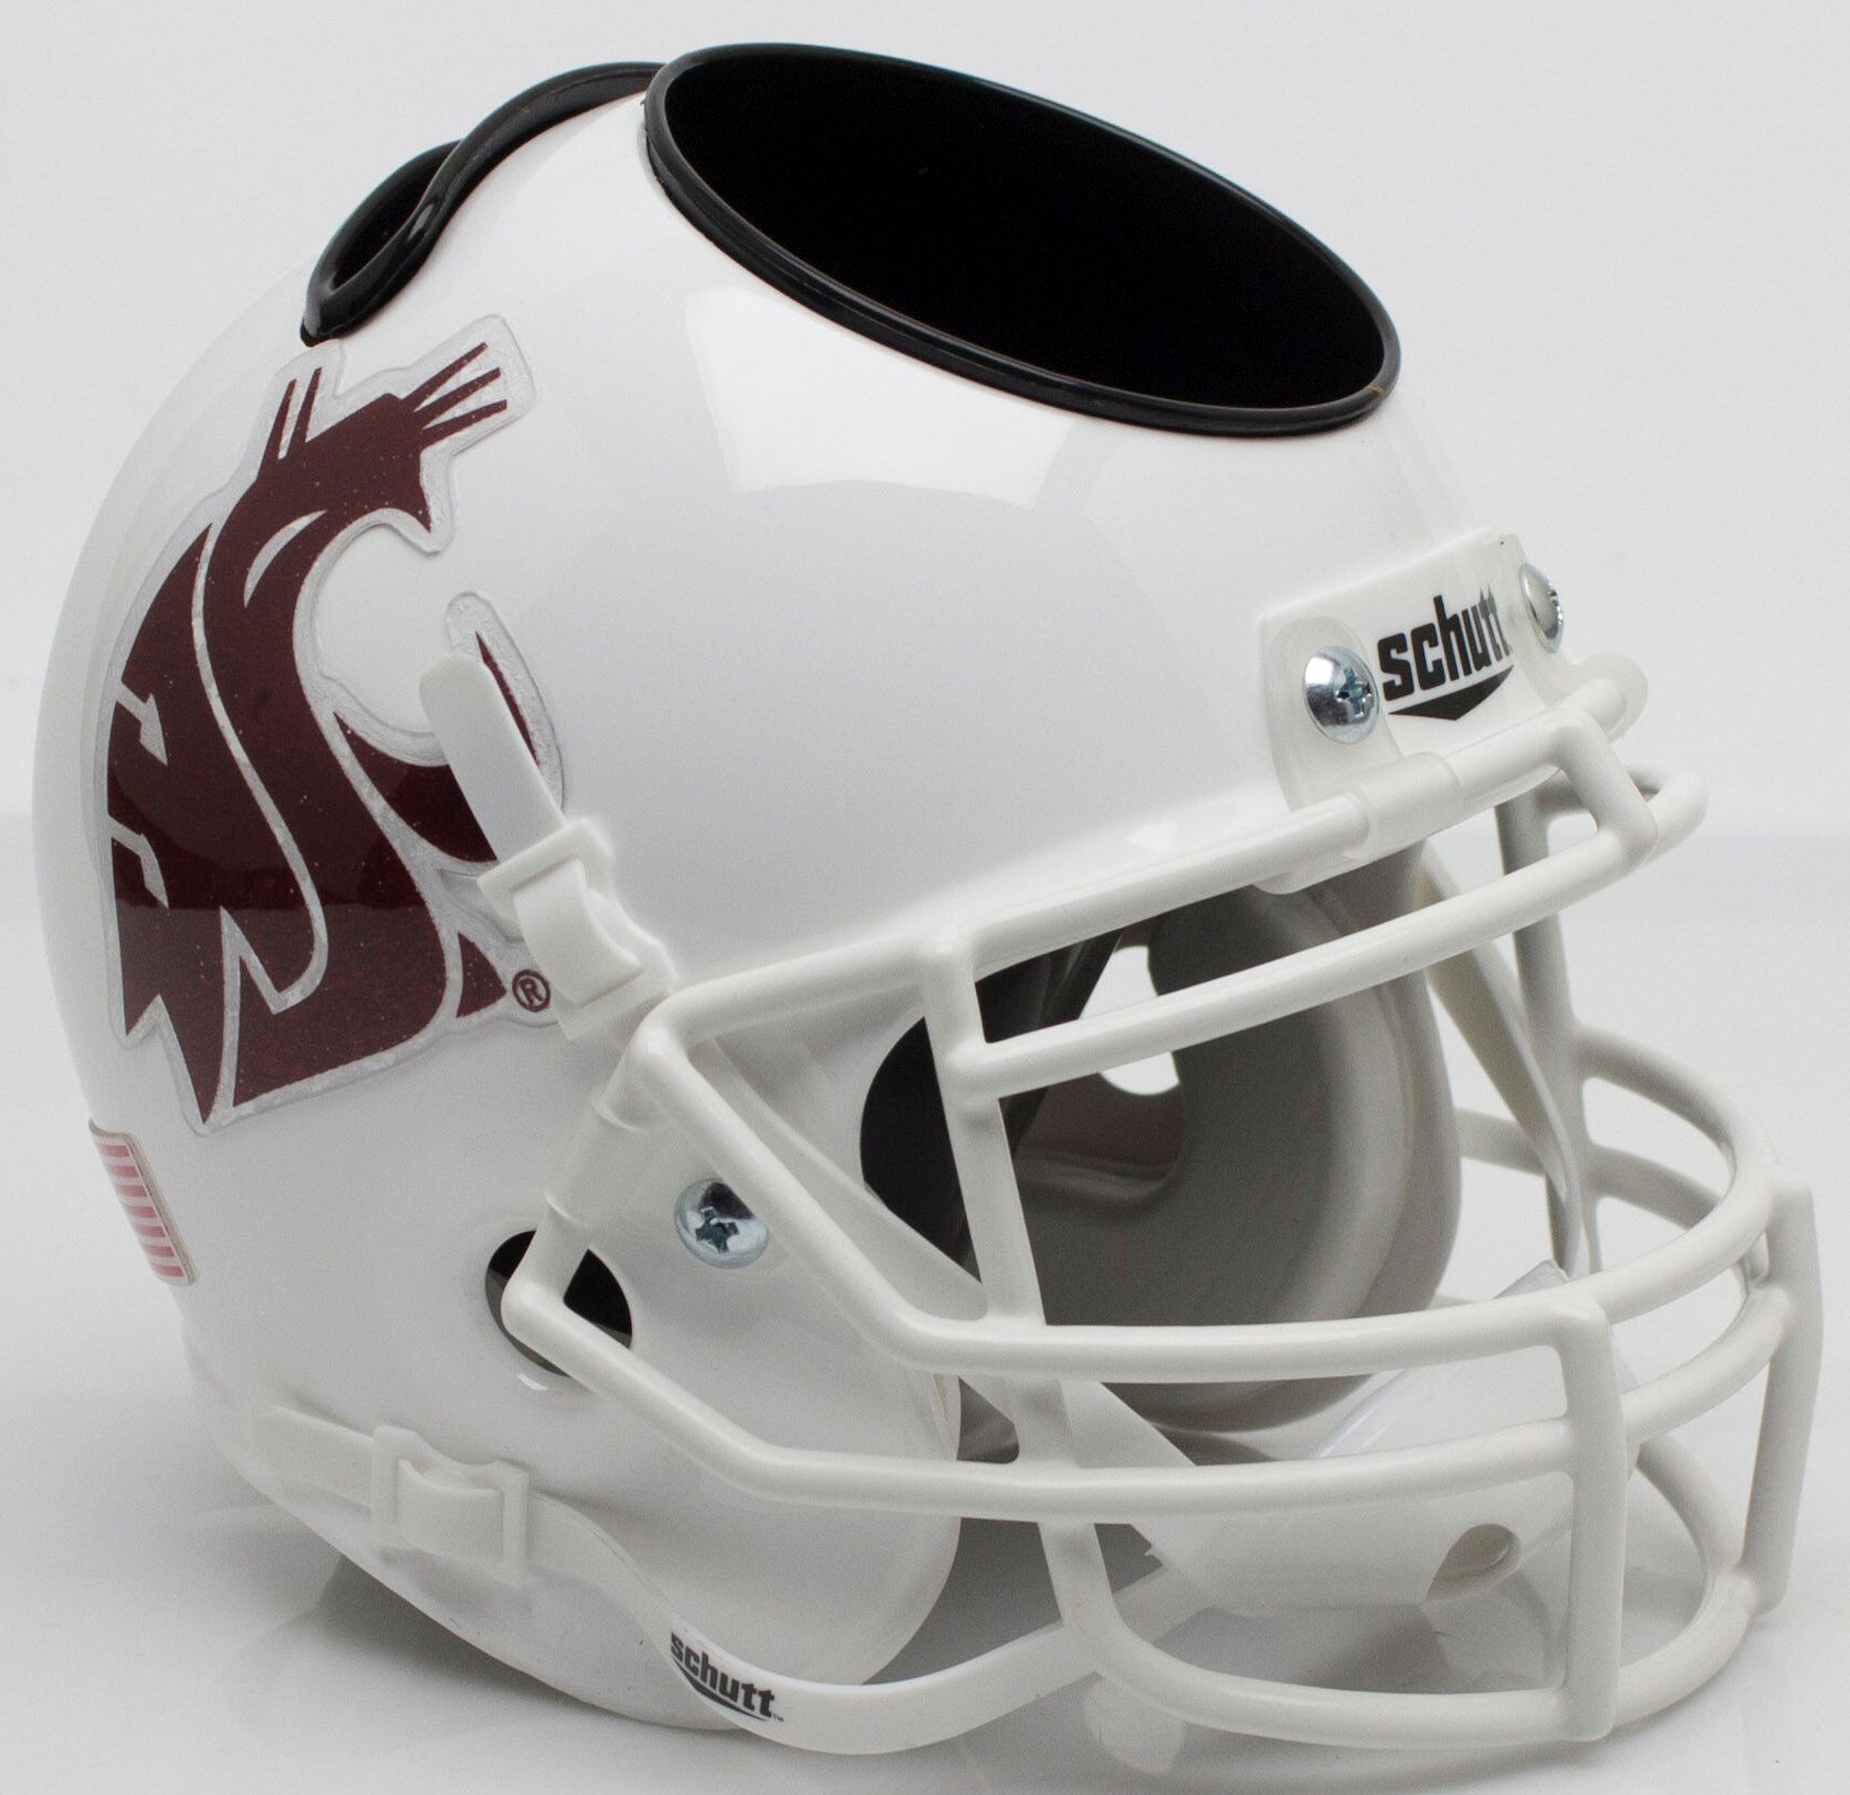 Washington State Cougars Miniature Football Helmet Desk Caddy <B>White</B>